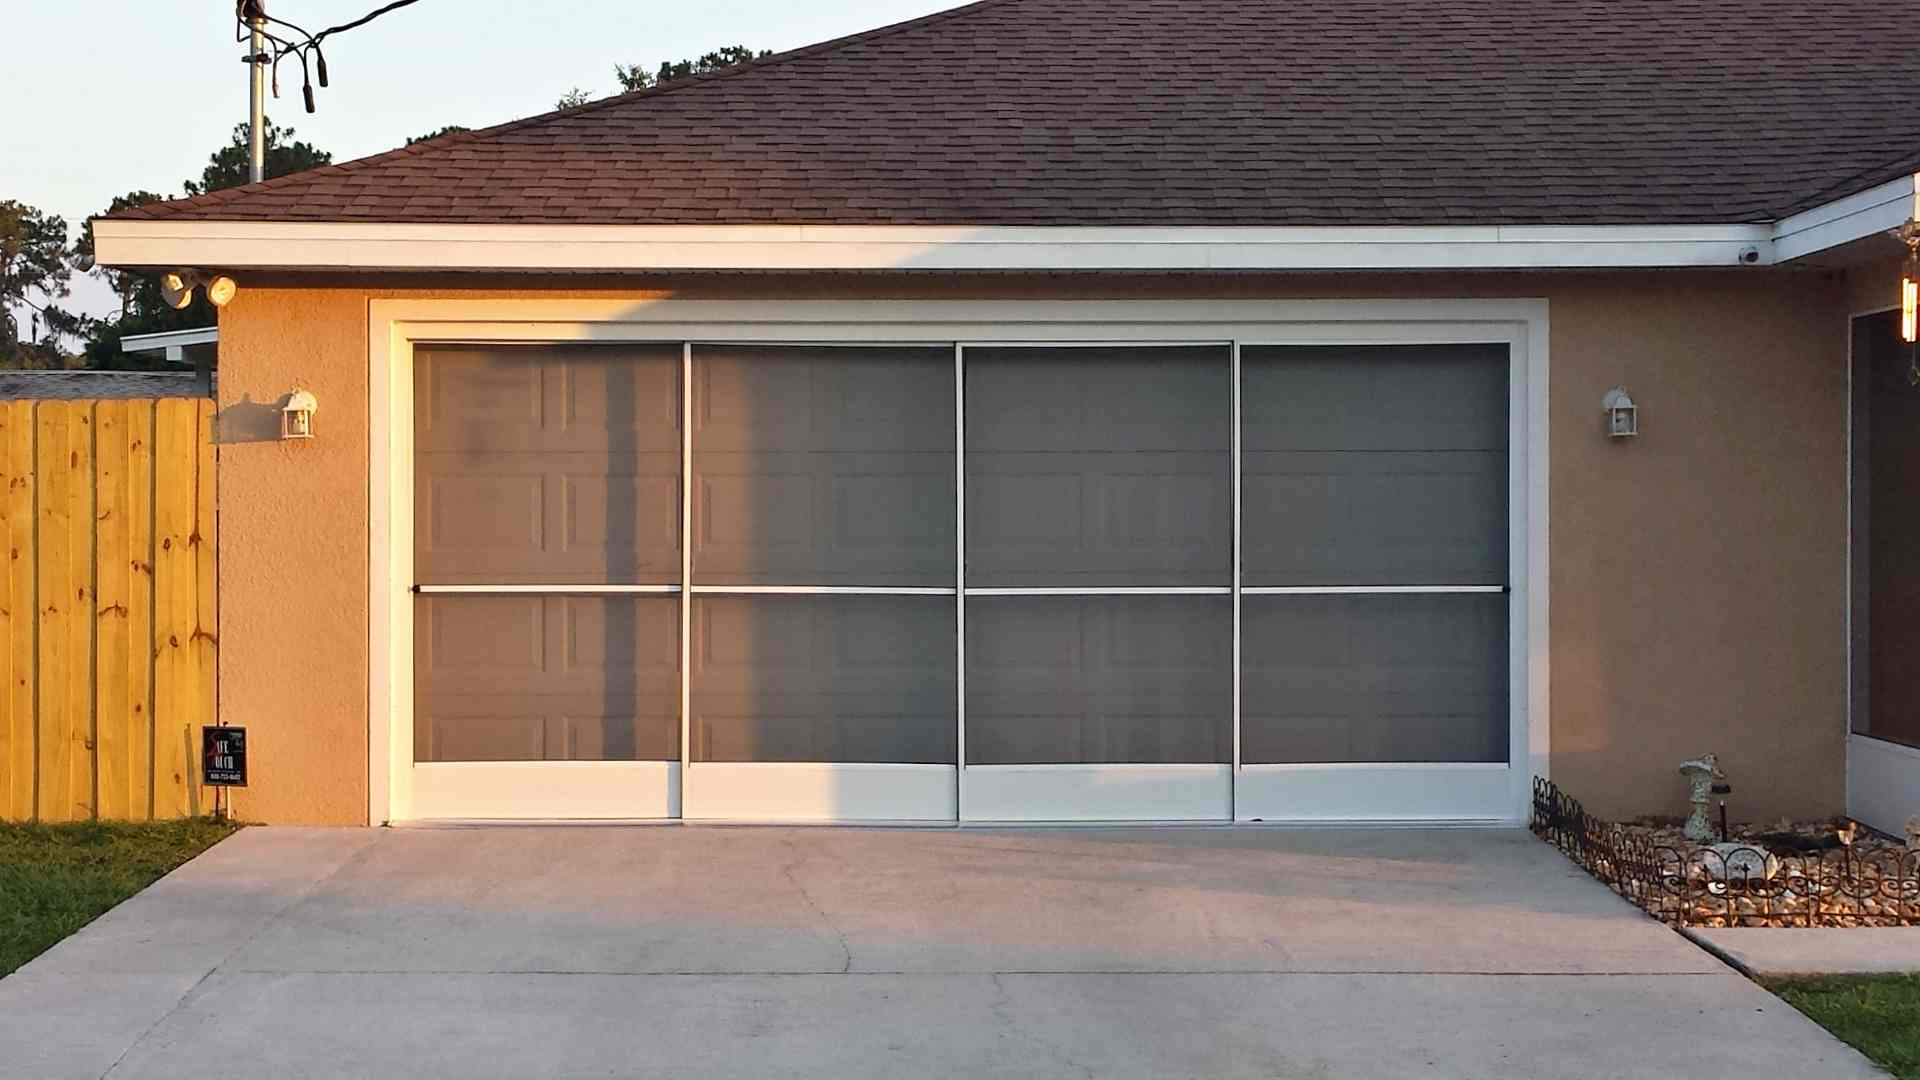 1080 #A96922 We Install And Service All Sliding Garage Screen Doors In pic Installed Garage Doors 37211920